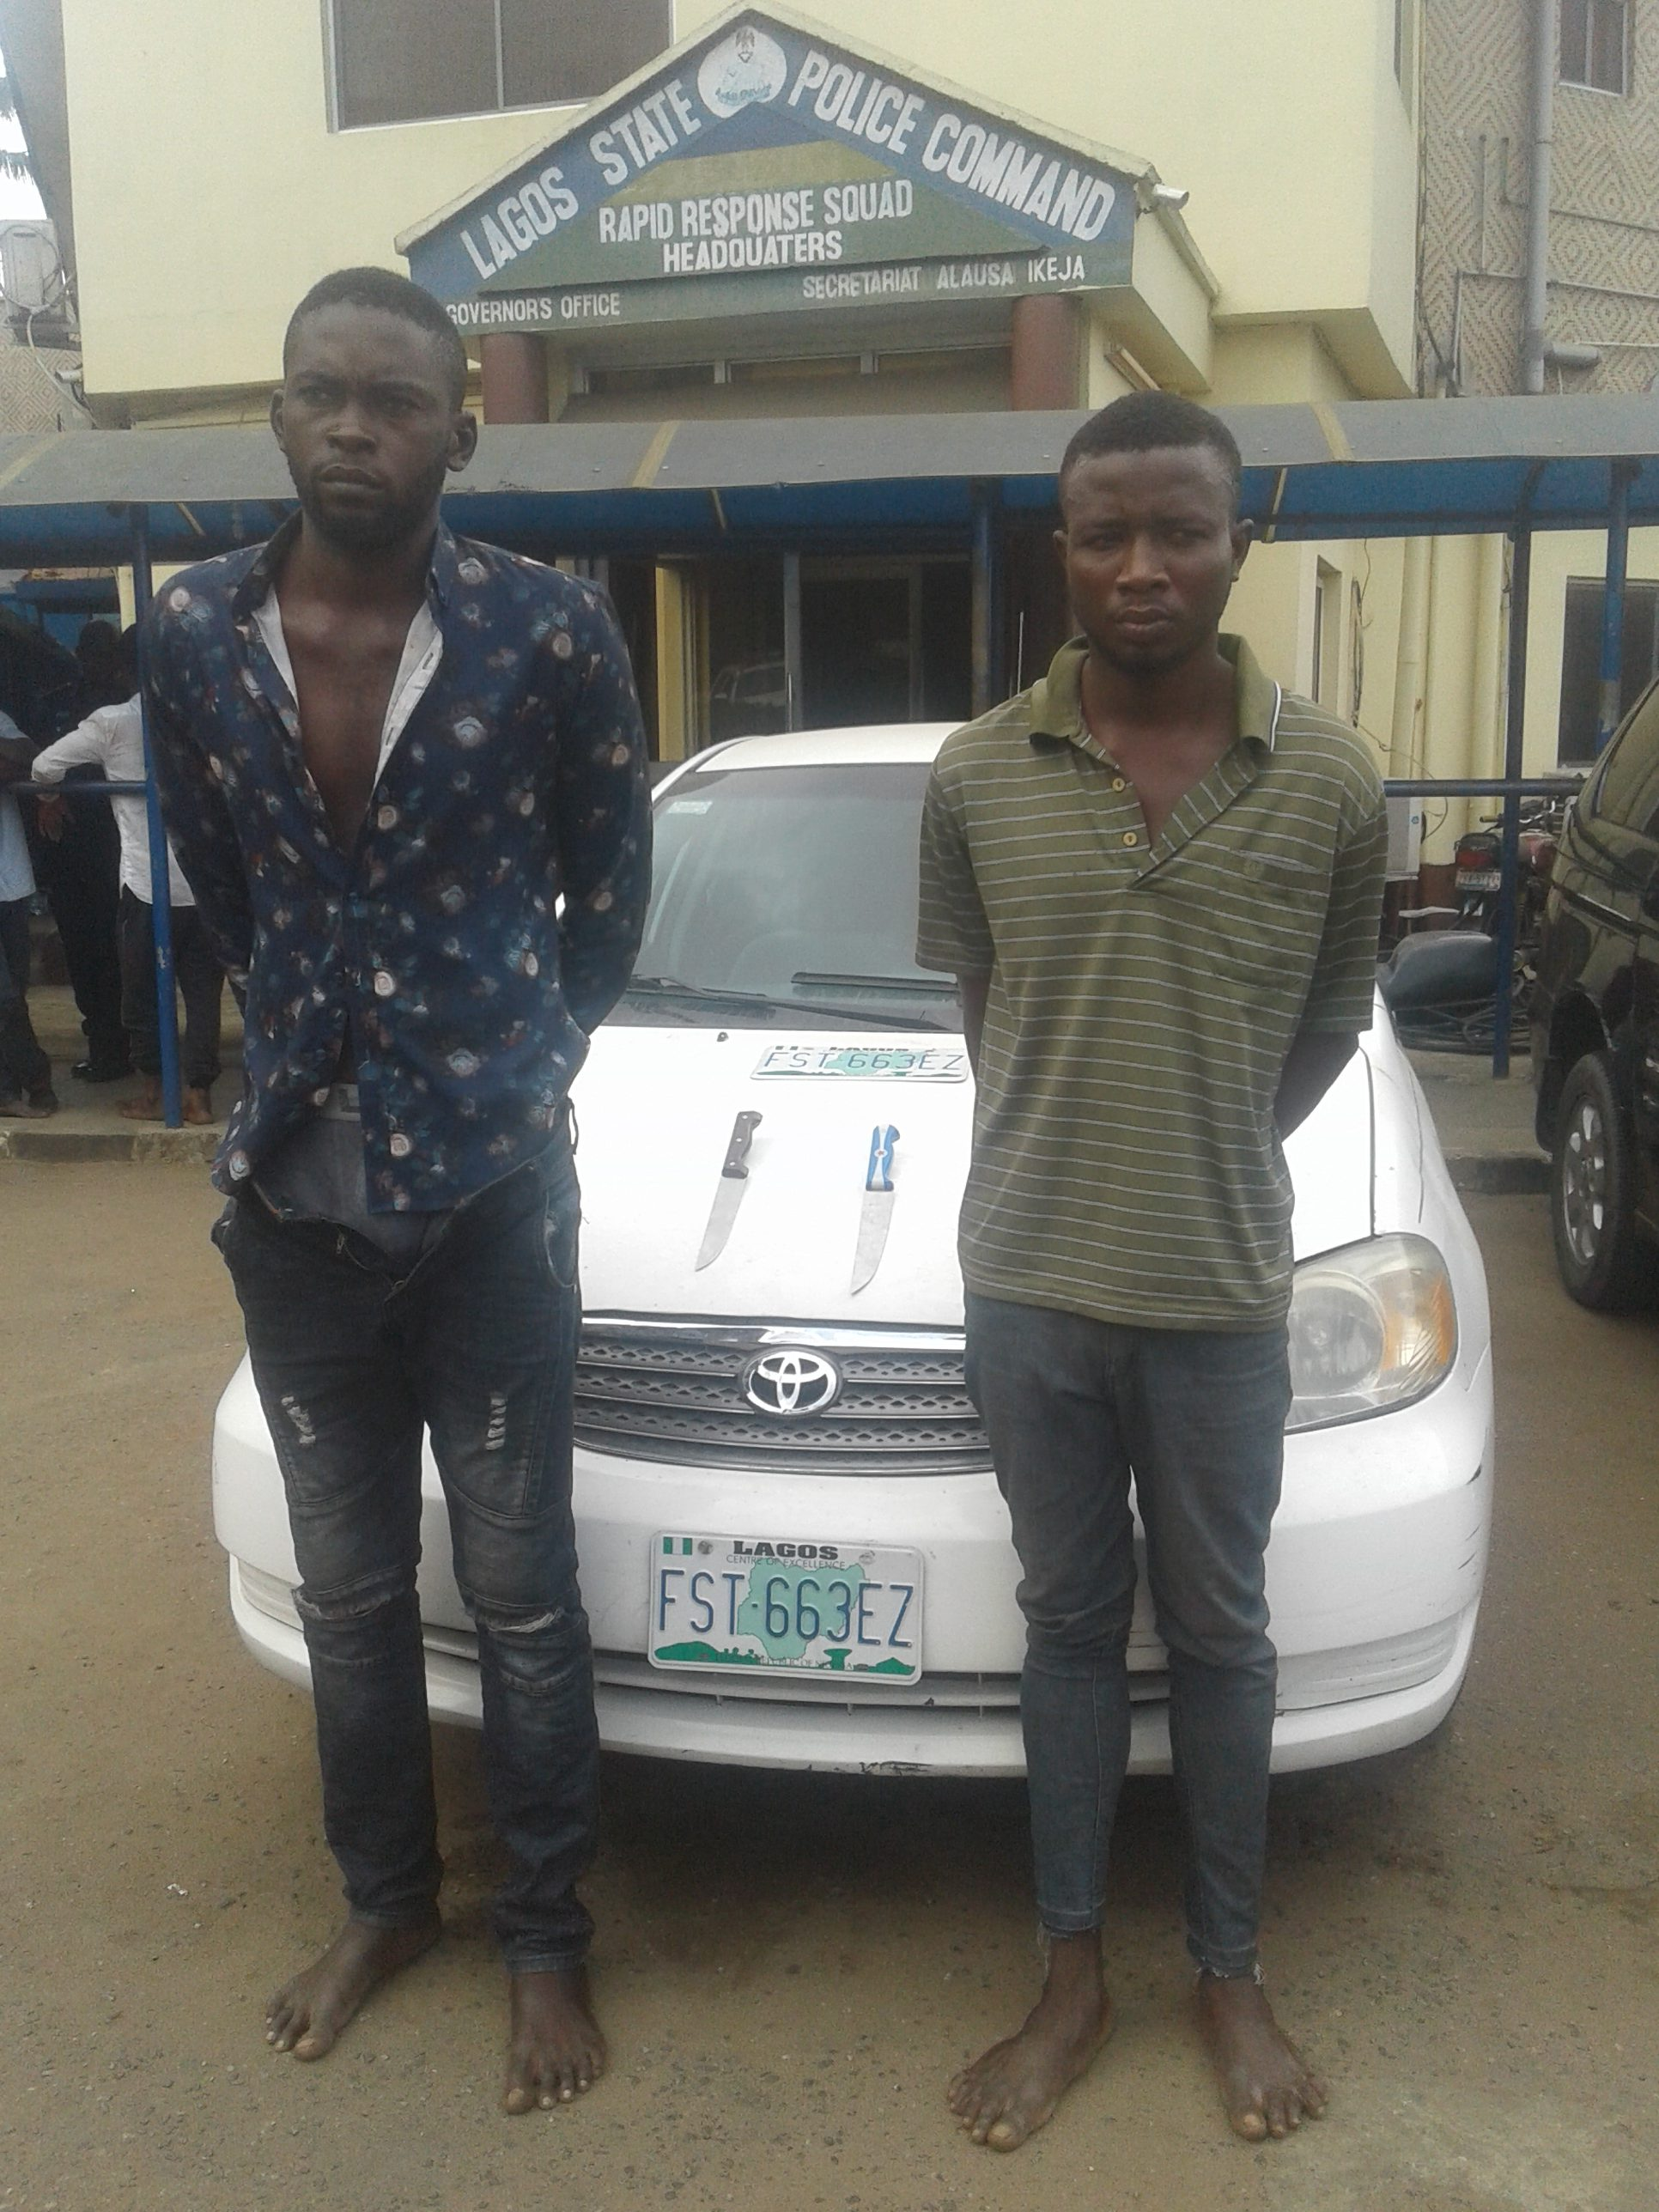 'We formed our gang in prison, snatch vehicles, sometimes kill the drivers'